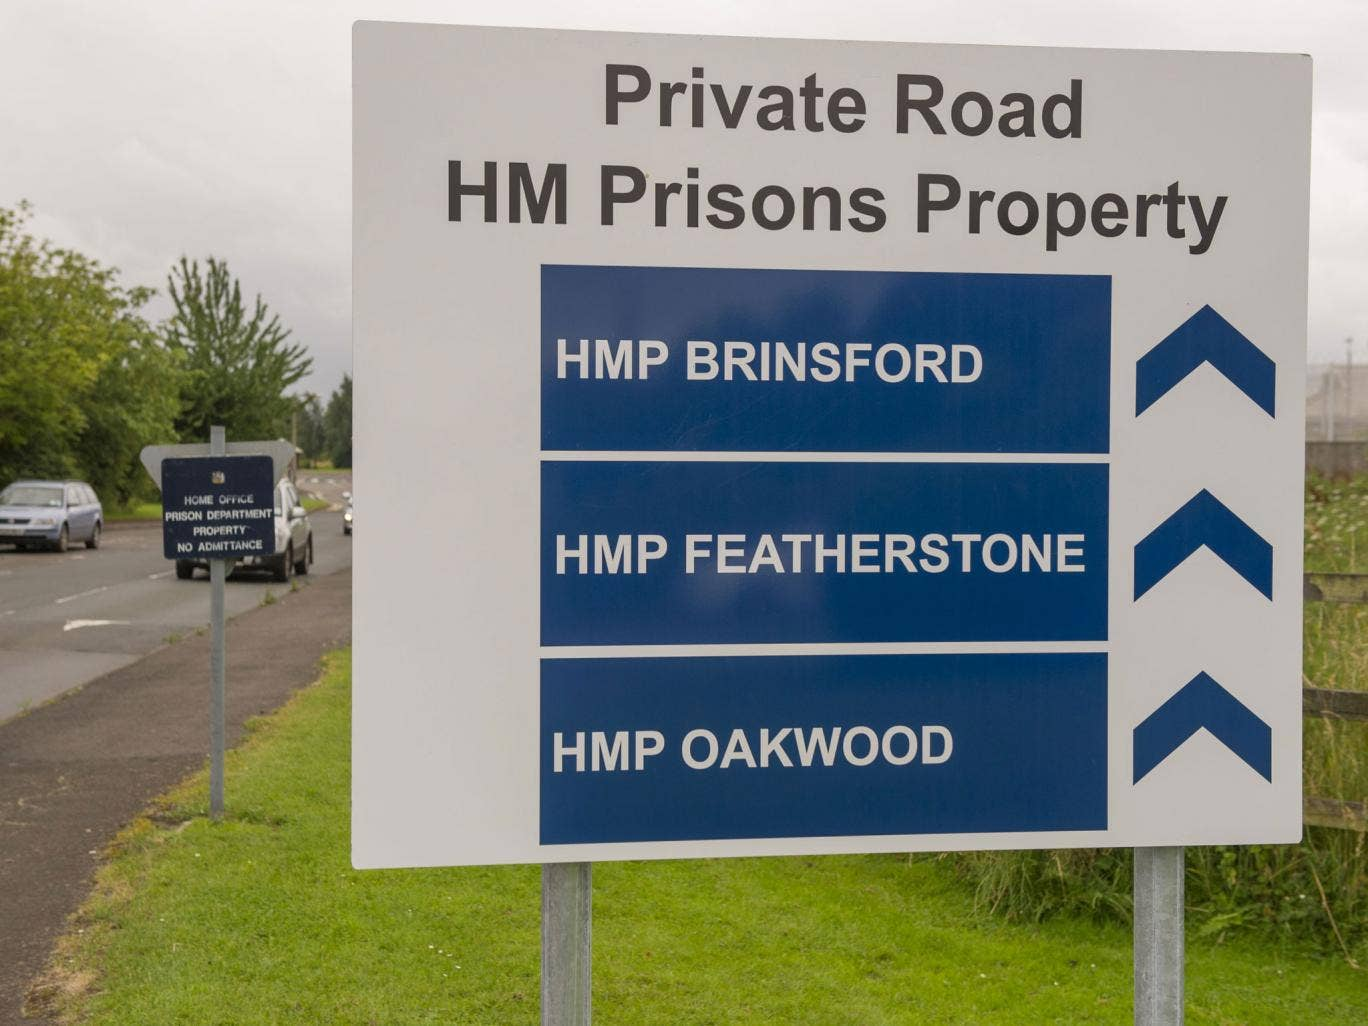 Road sign to the entrance of HMP Featherstone, HMP Brinsford and HMP Oakwood; a nine-hour disturbance at Oakwood prison has been described as a 'full scale riot'